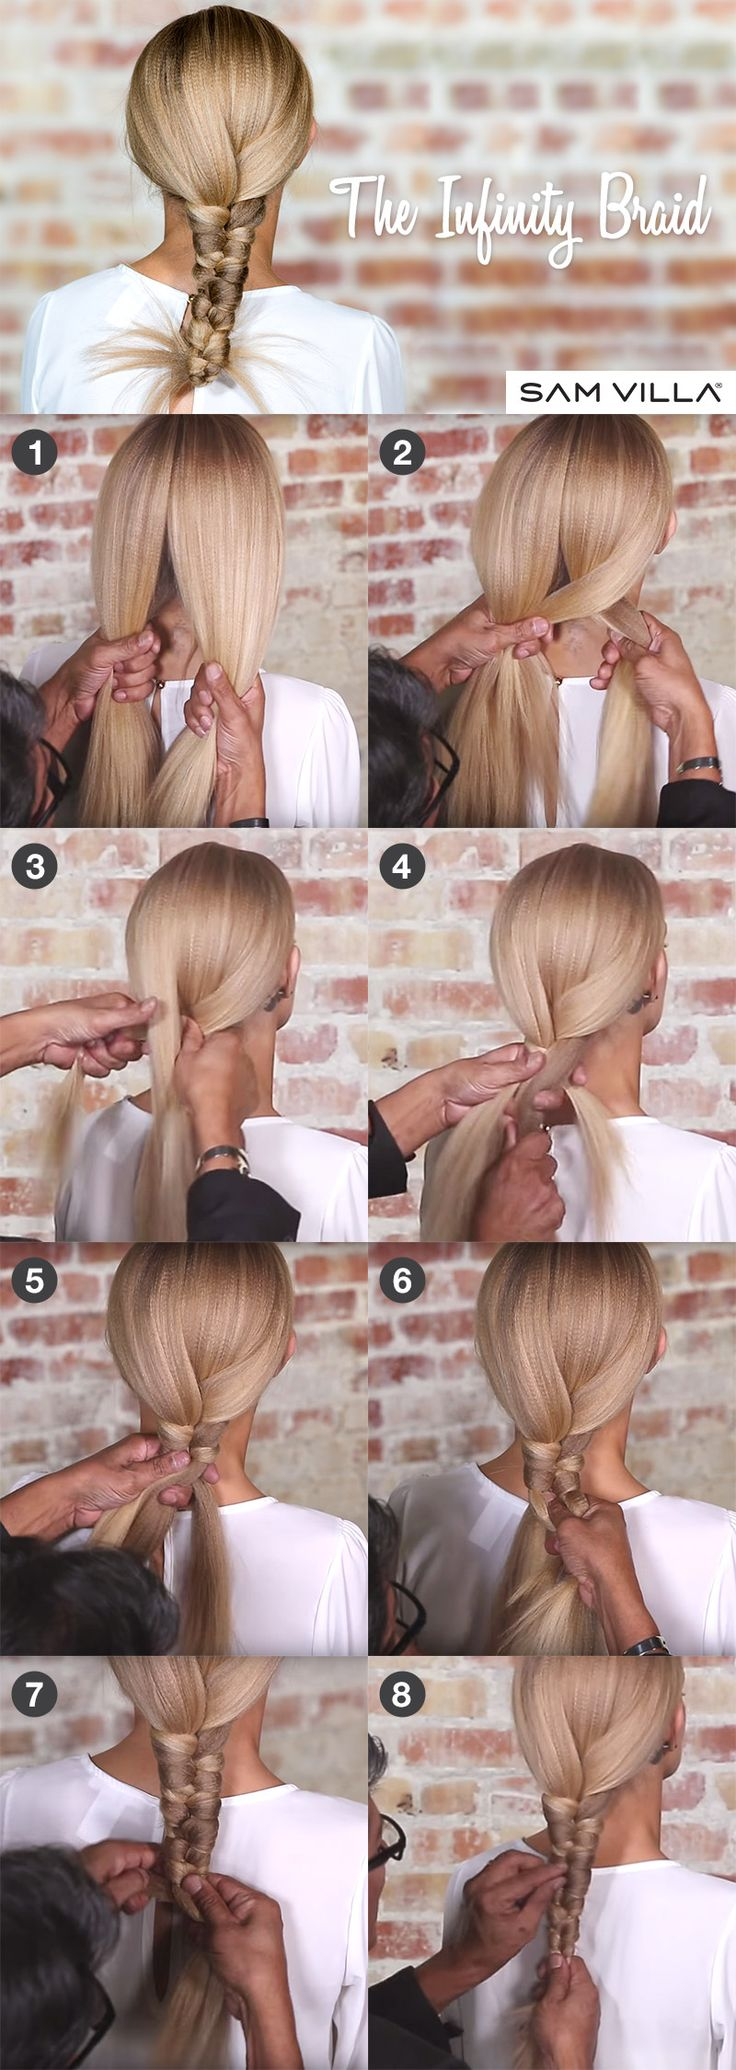 How to create an Infinity Braid by Sam Villa